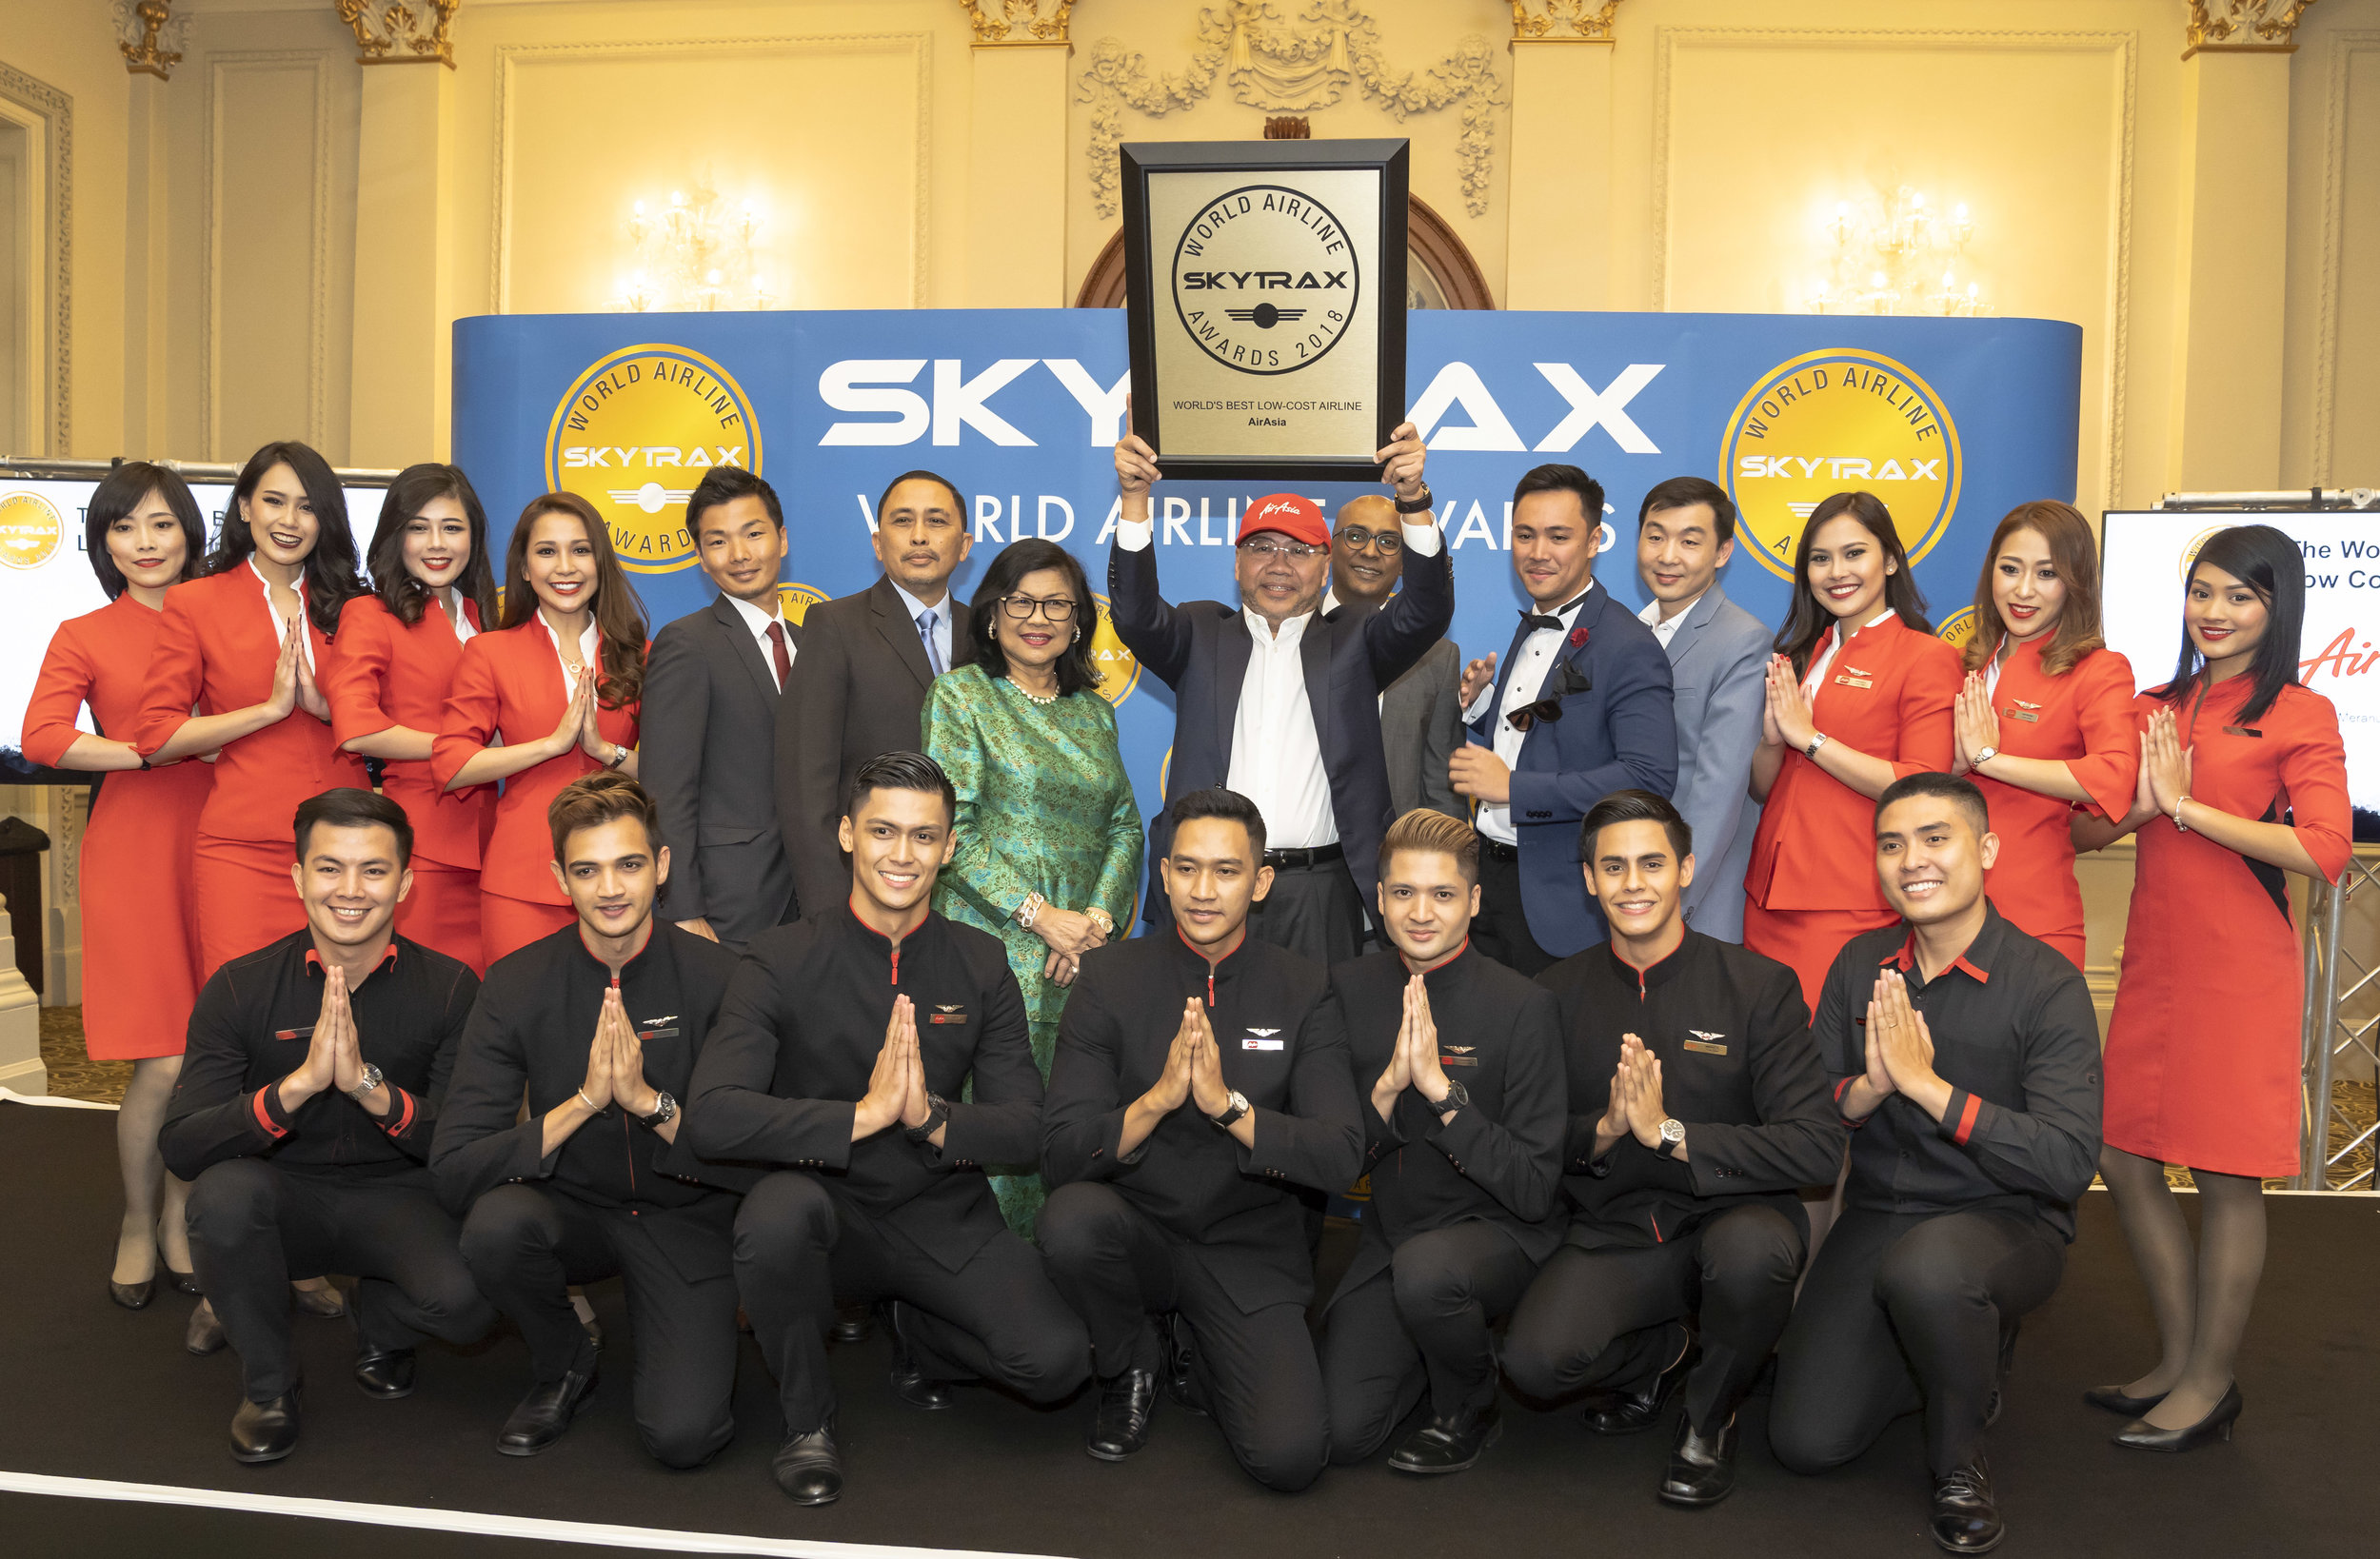 (From middle left to right) Chairman of AirAsia X Tan Sri Rafidah Aziz, Executive Chairman of AirAsia Group Berhad and Group CEO of AirAsia X Datuk Kamarudin Meranun, and Deputy Group CEO (Airline Business) Bo Lingam with AirAsia Allstars (employees) at the 2018 Skytrax World Airline Awards.